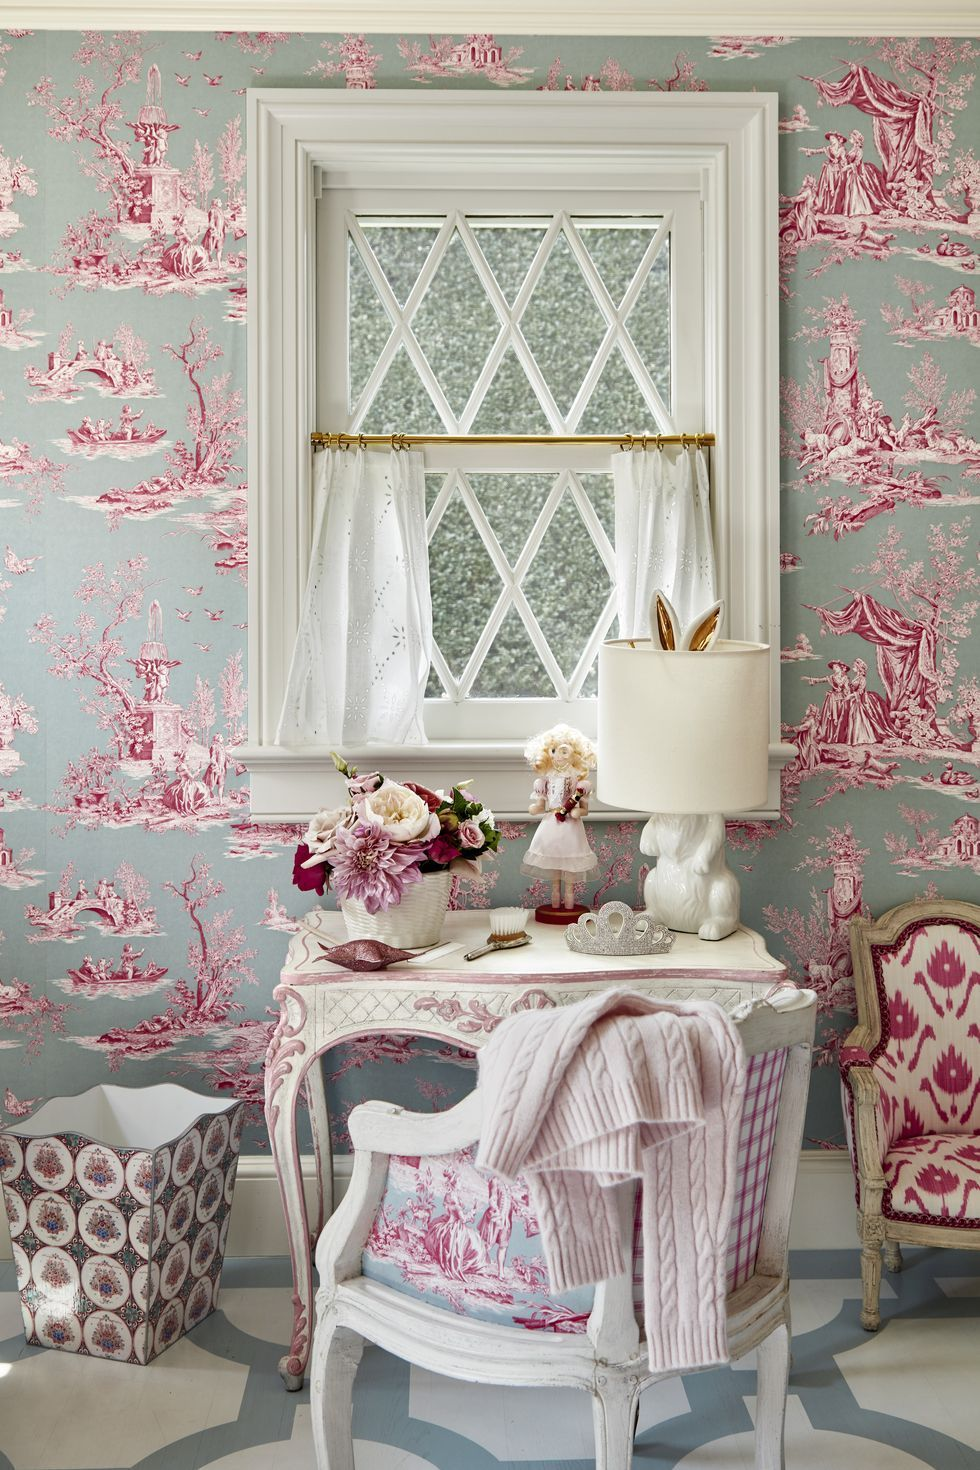 These Toile Wallpaper Ideas Will Transform Your Home Into A French Country Cottage Toile Wallpaper Neutral Bedroom Design Decor